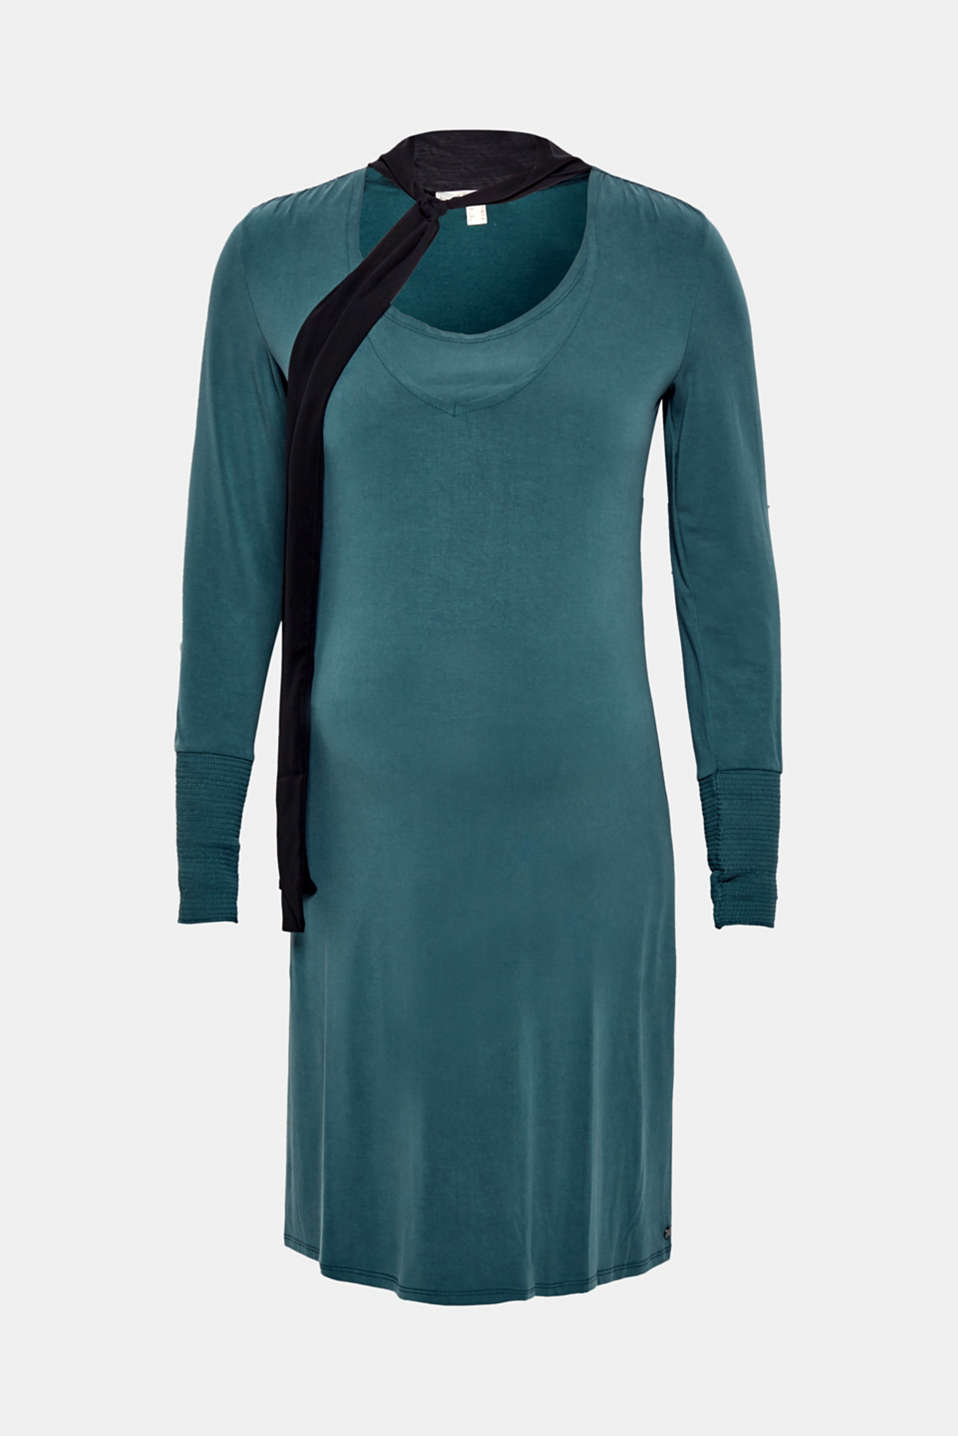 Esprit - Nursing dress in stretch jersey with a chiffon scarf